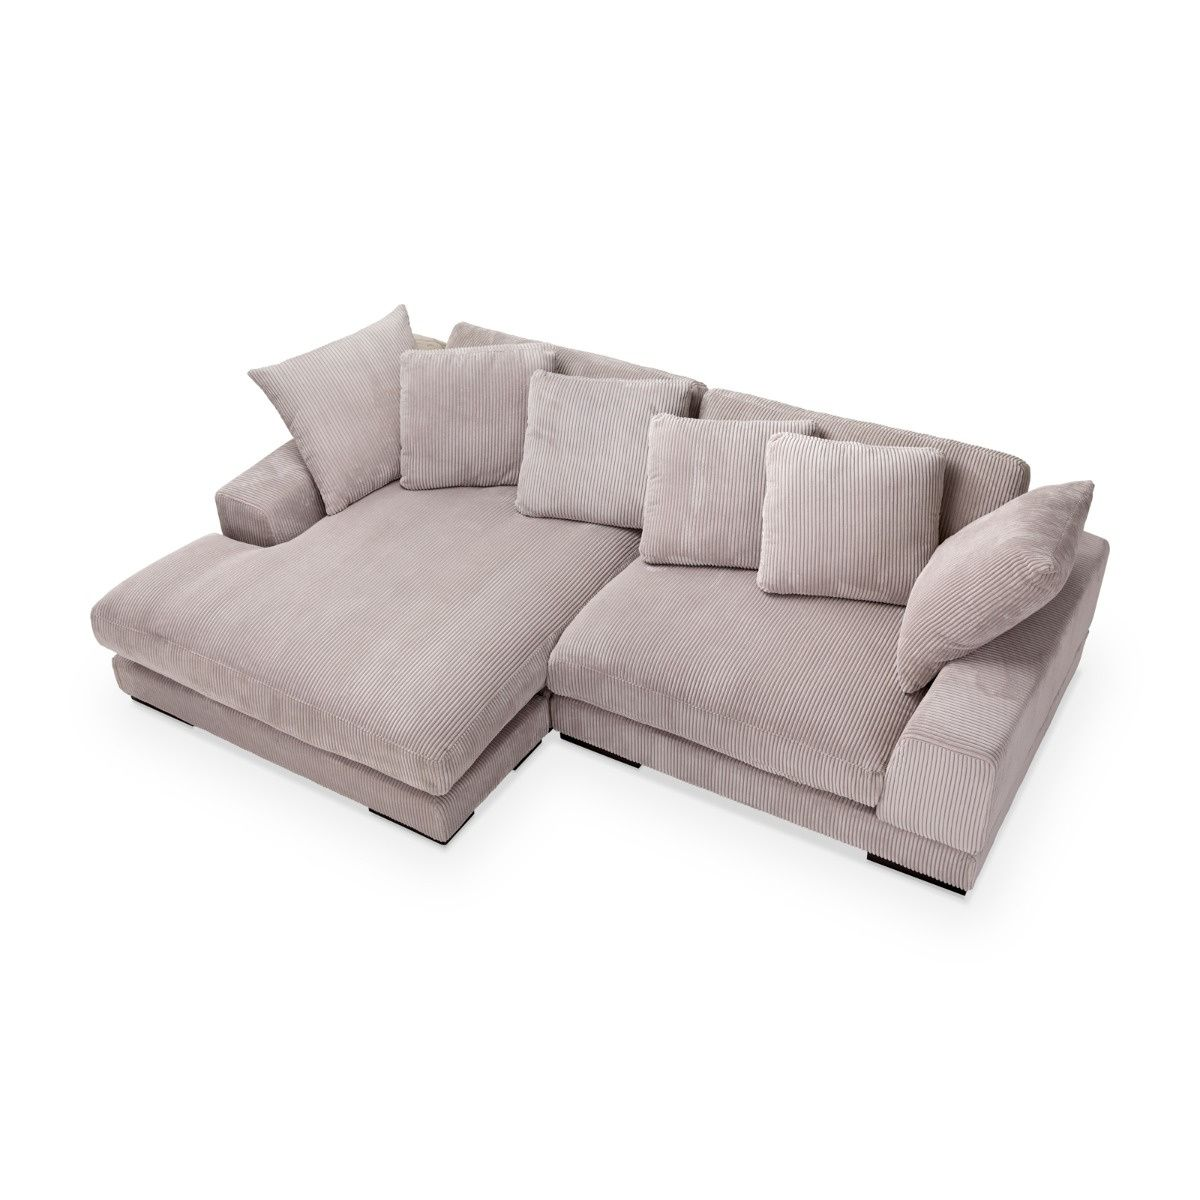 Plunge Canape Sectionnel En Velours Cotele Must Societe In 2020 Sectional Sofa Sectional Sofa